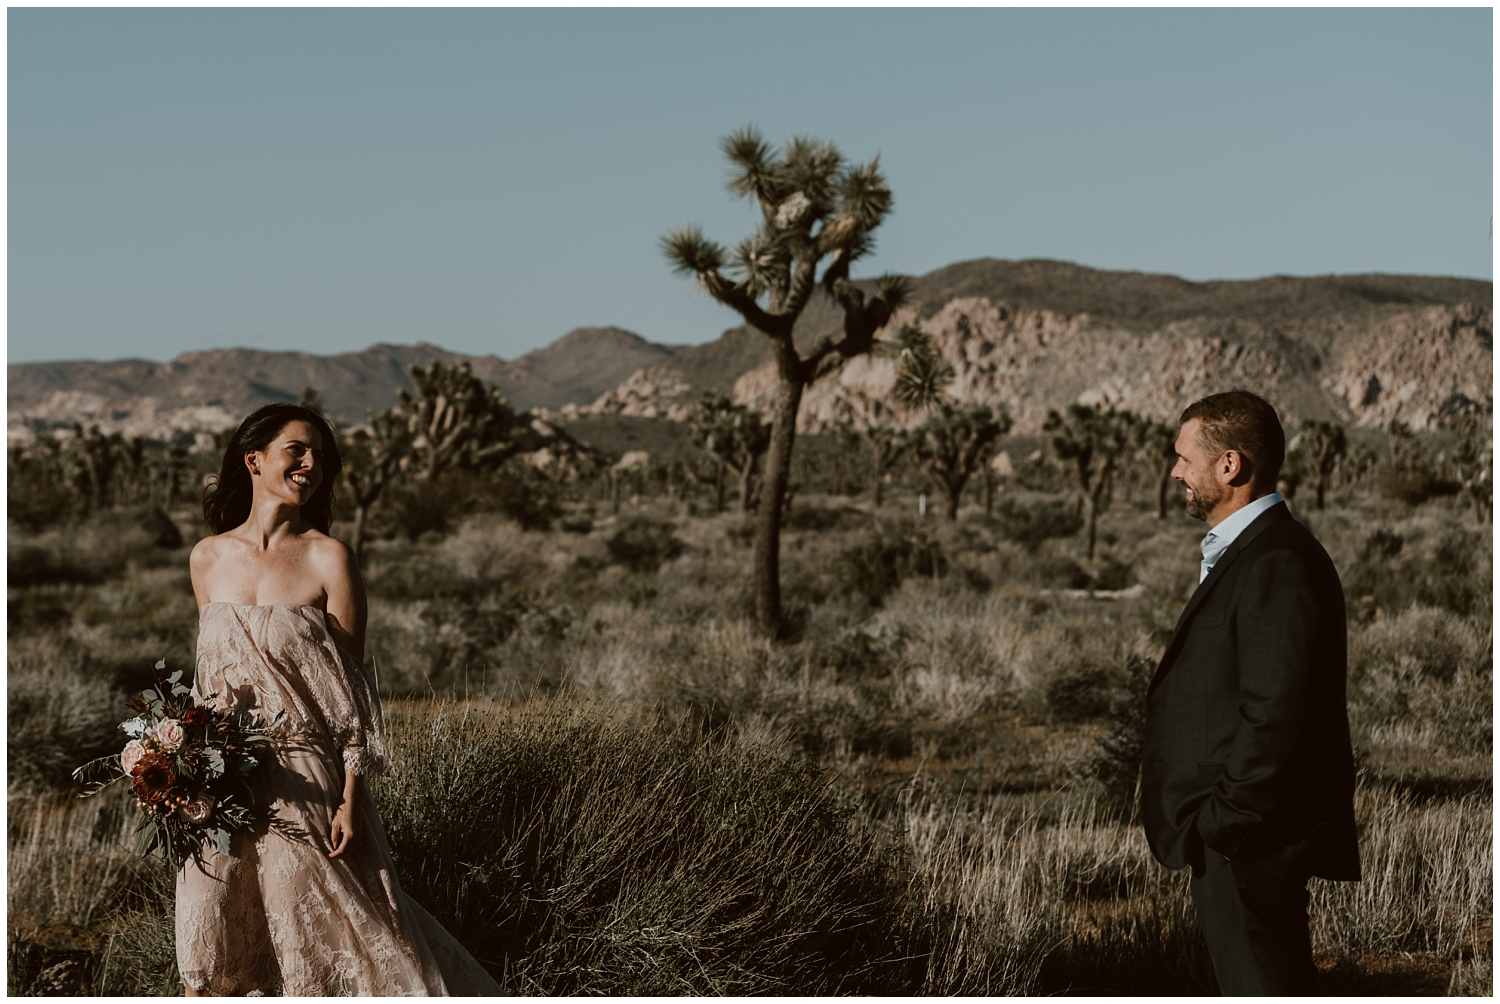 Cap-Rock-Joshua-Tree-Elopement-0017.jpg